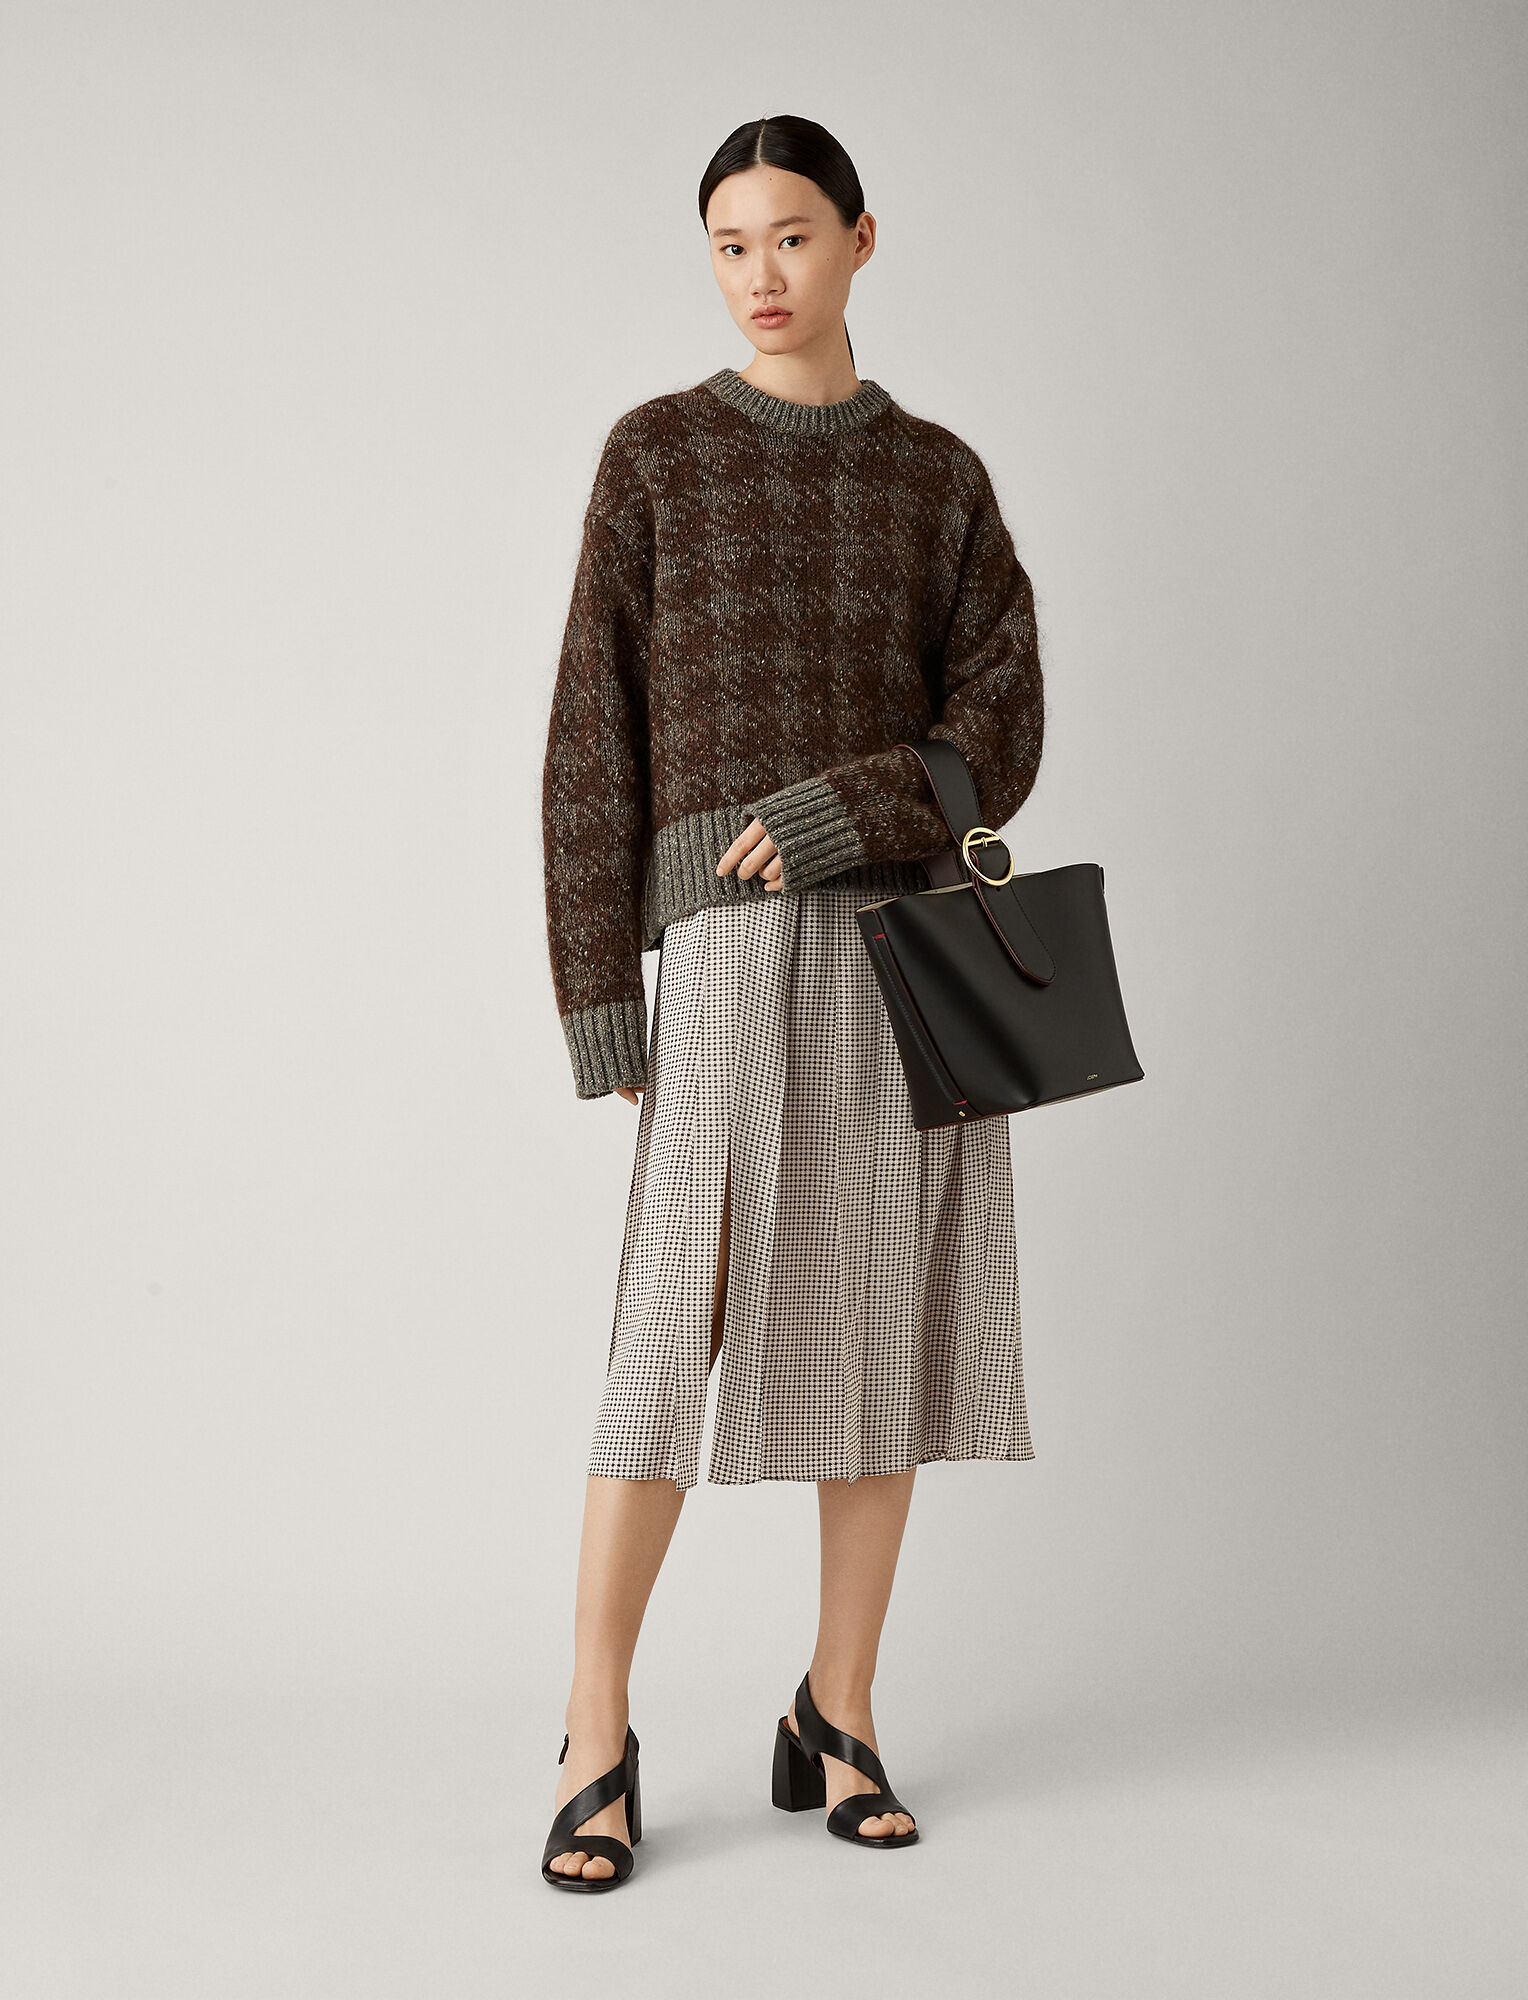 Joseph, Pied De Poule Knit, in BROWN COMBO